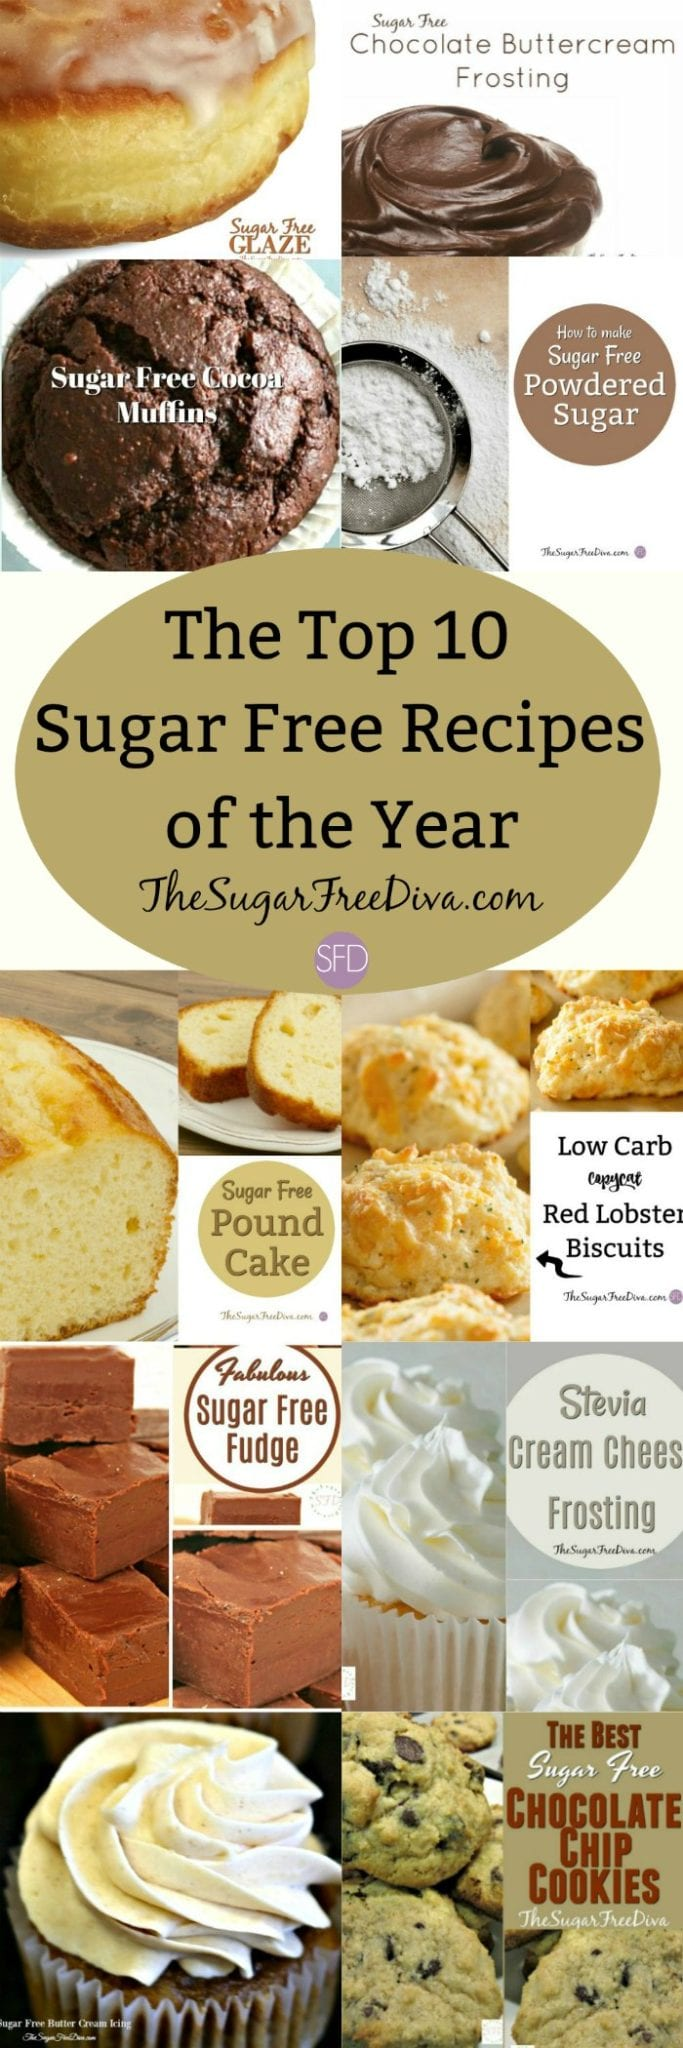 The Top 10 Sugar Free Recipes of the Year